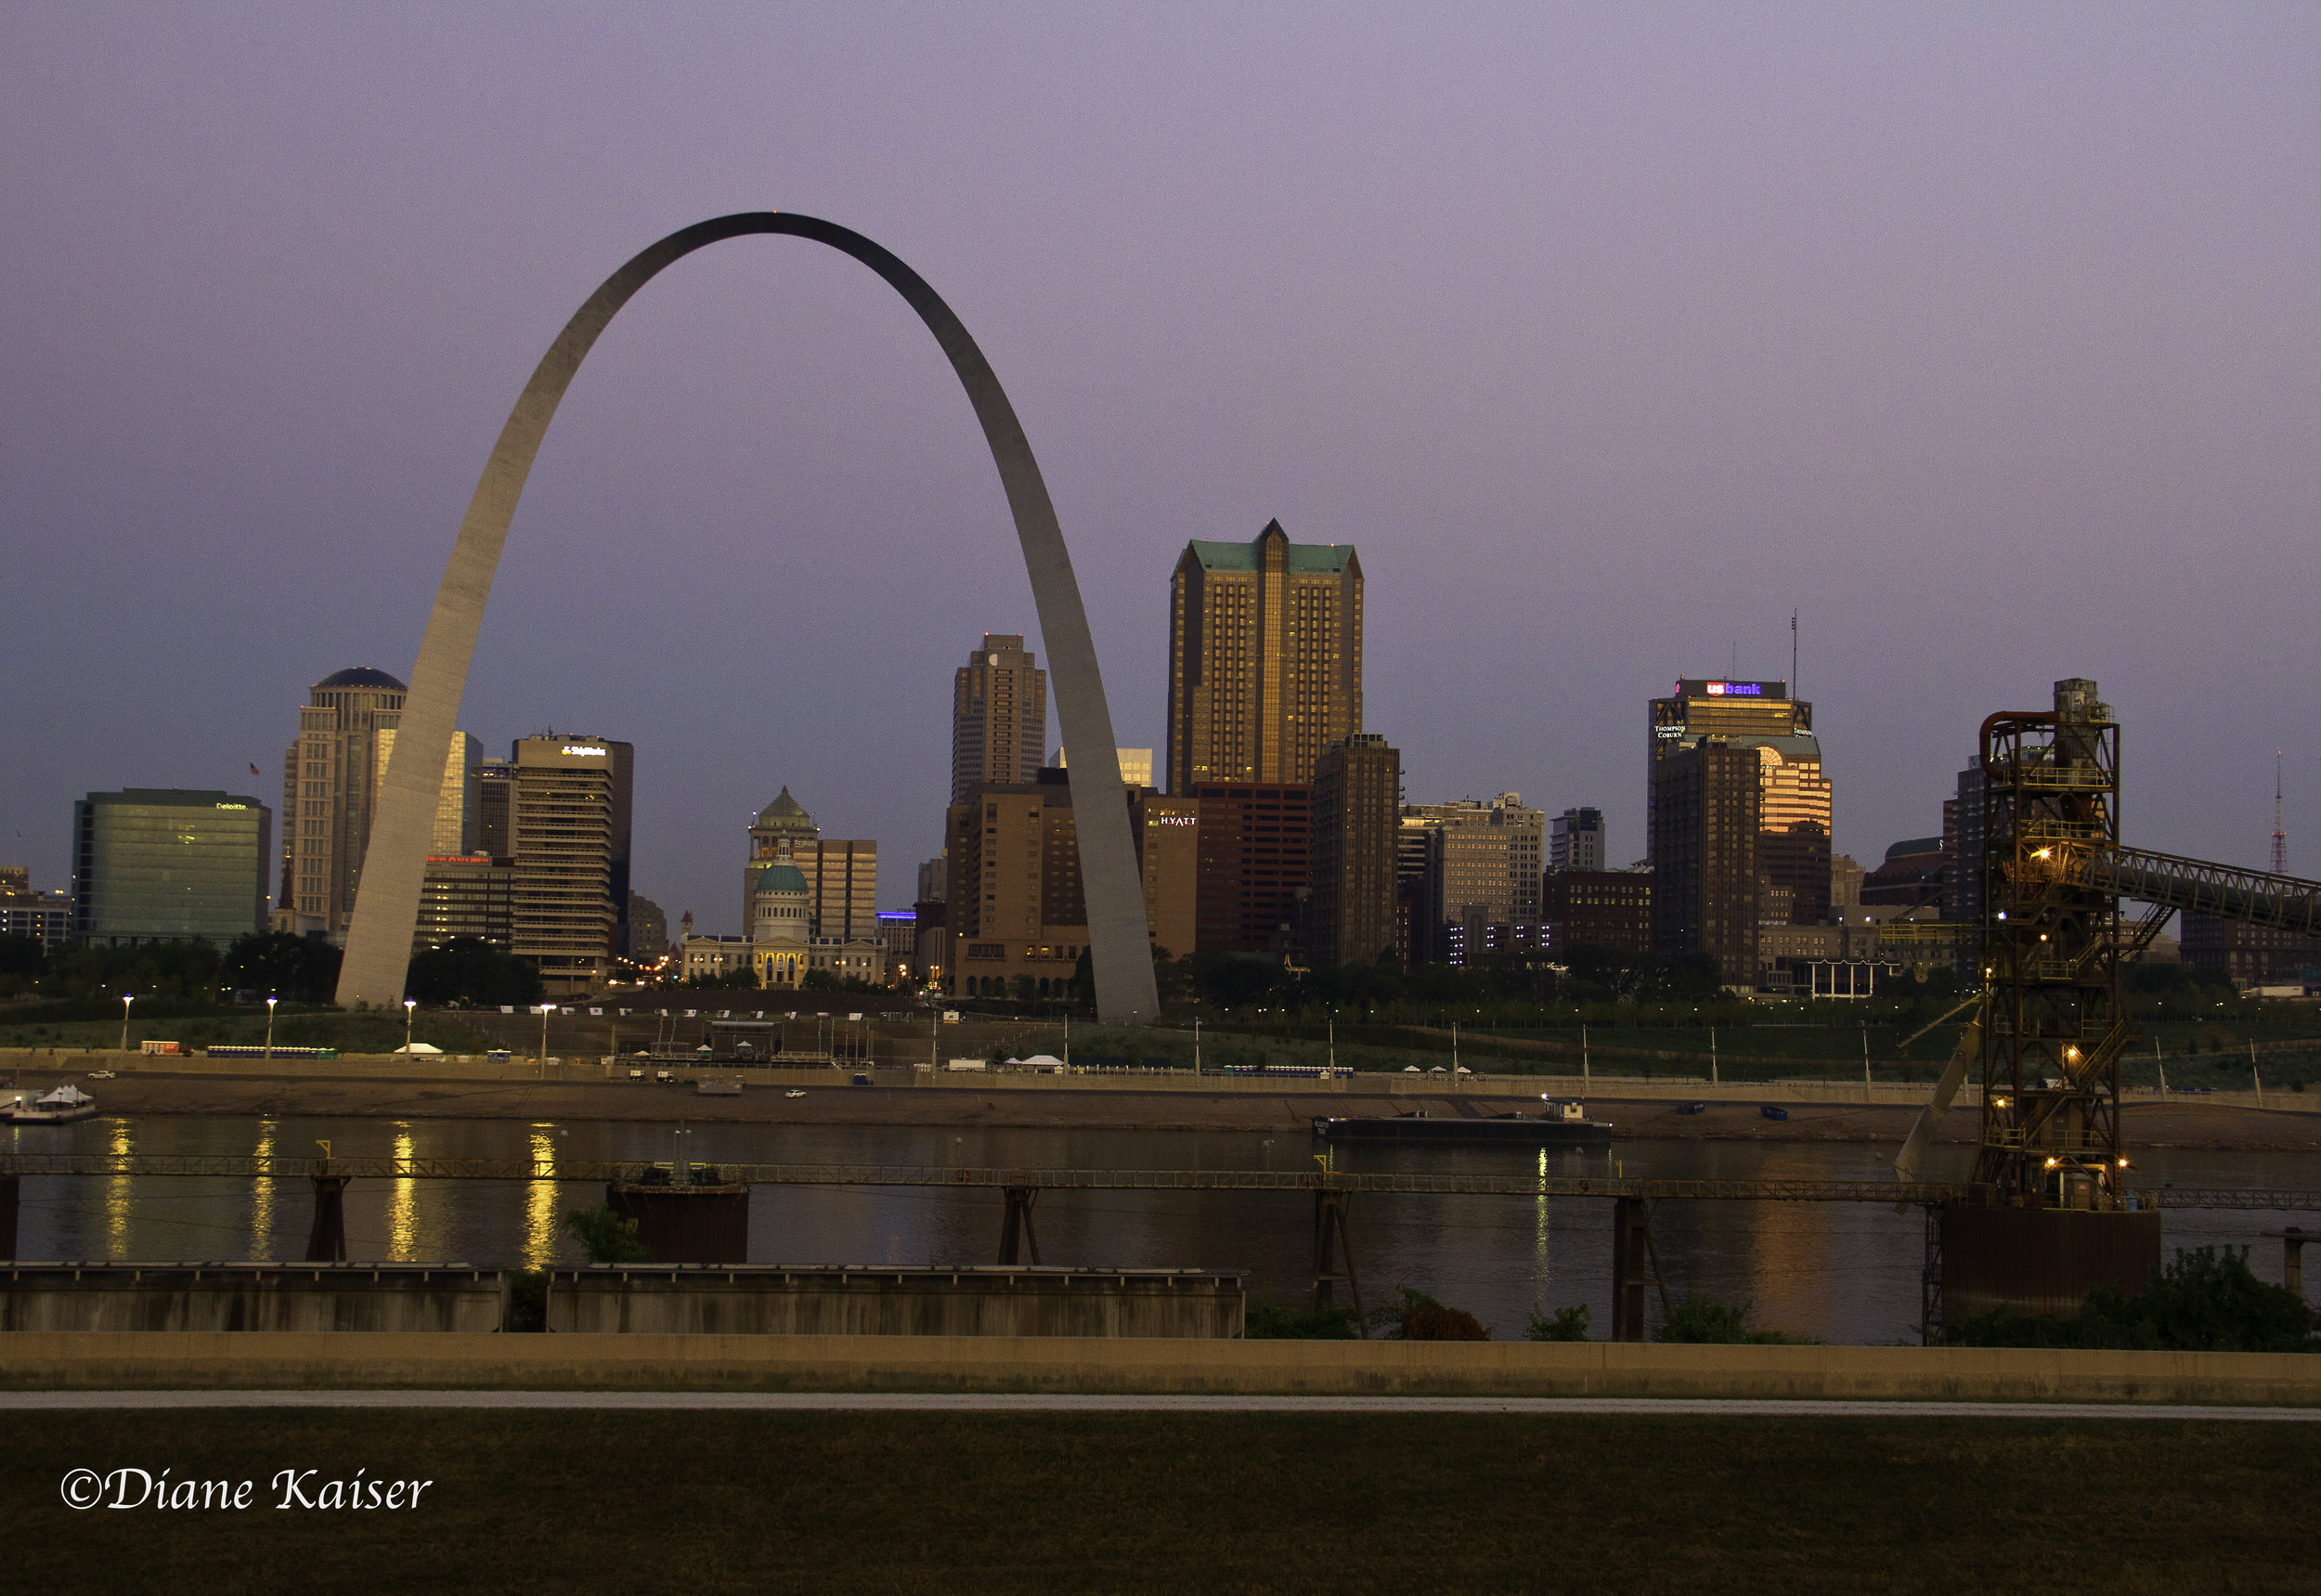 We agreed to leave early in the morning and start our adventure at the Malcolm Martin Memorial Park. We had done some research on the best place to photograph the arch and this was one place that had high marks. From here, we looked across the Mississippi River westward toward St. Louis.